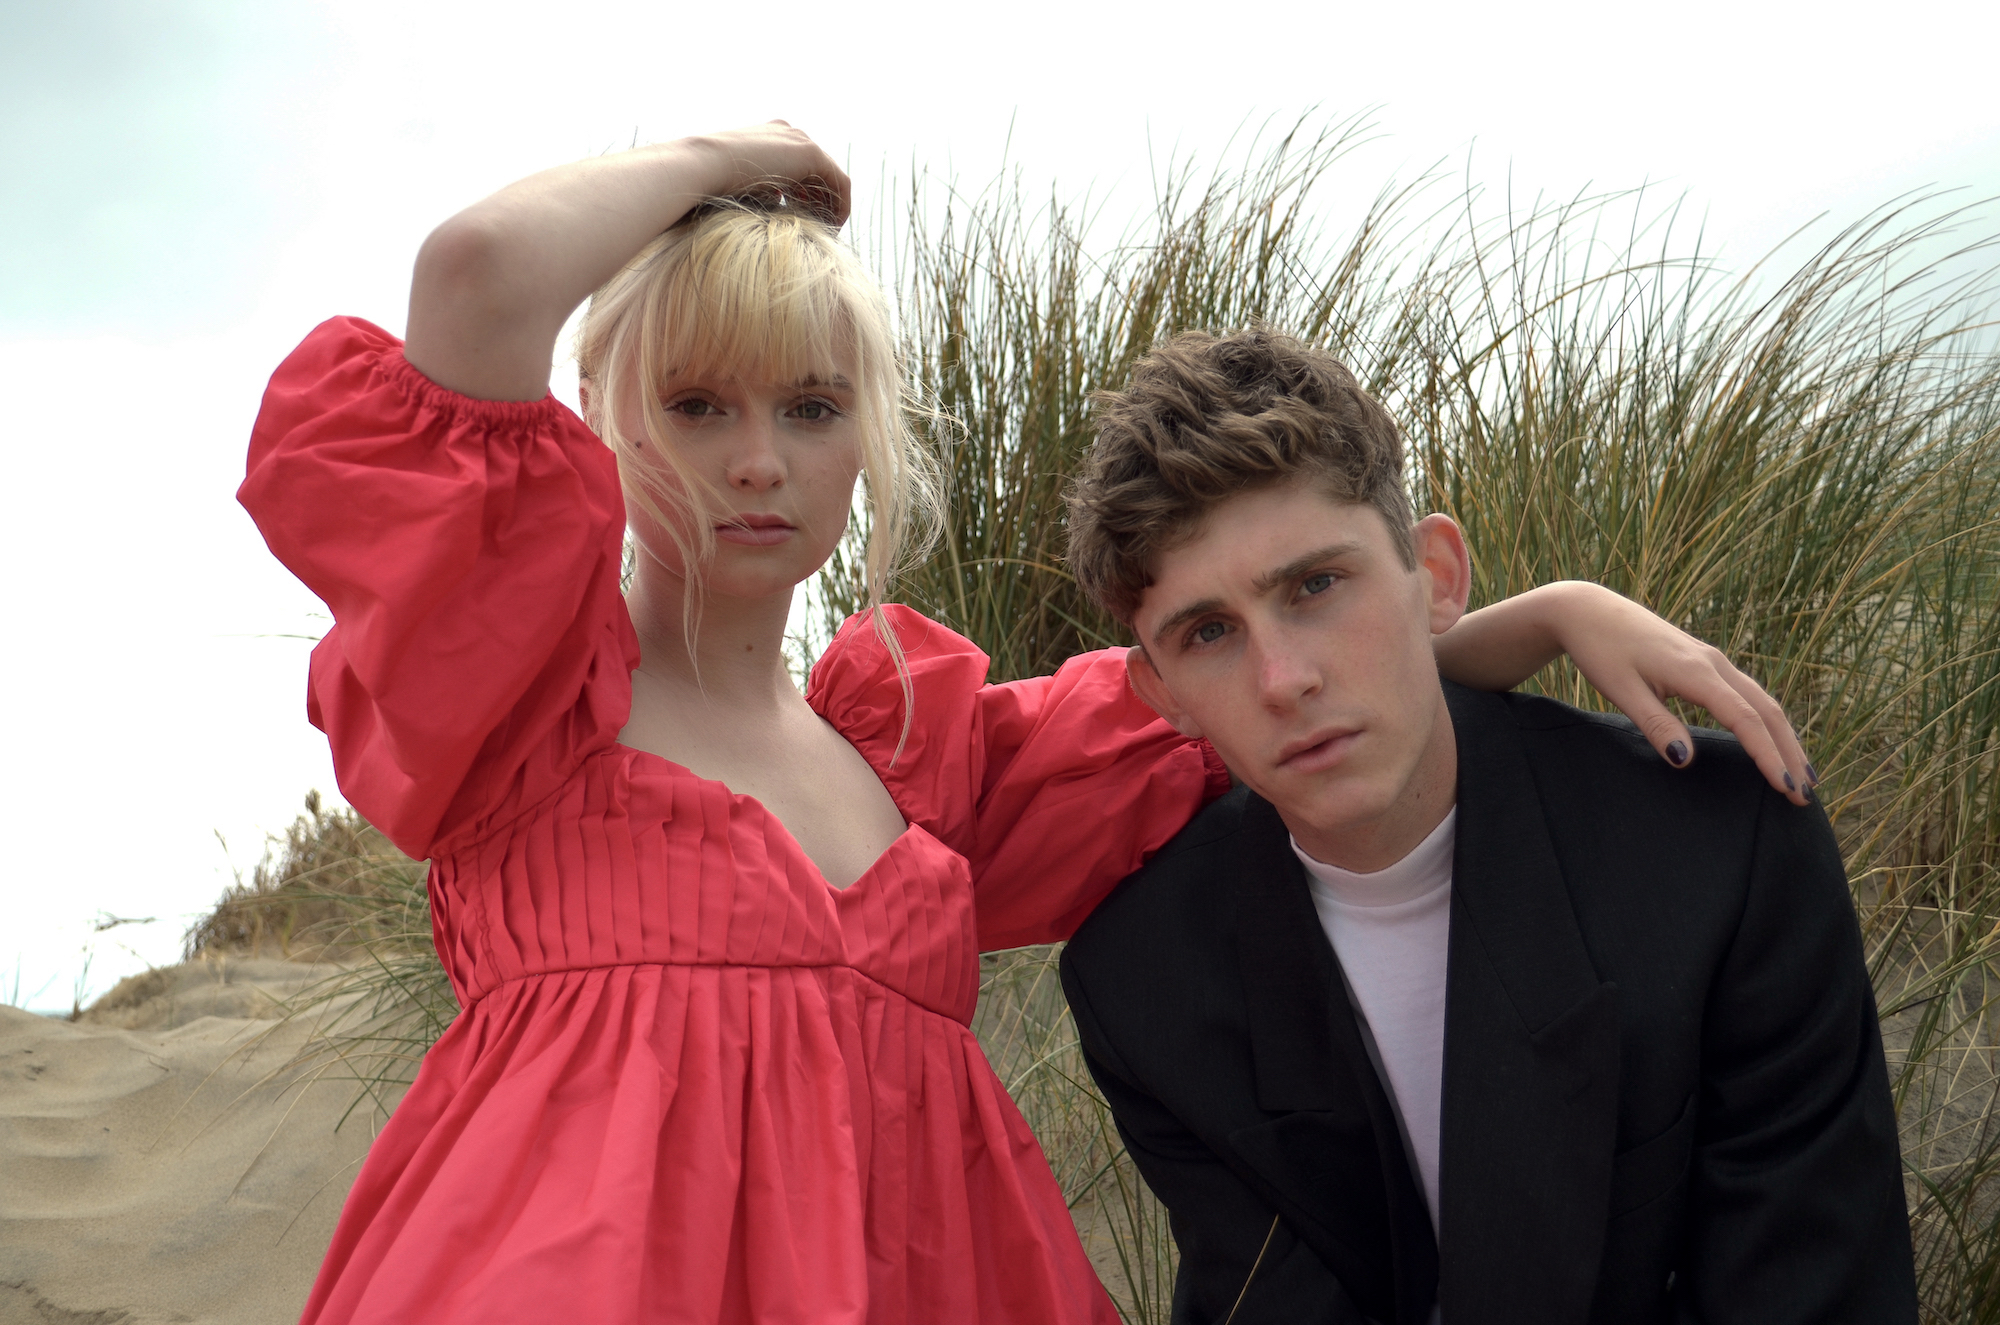 Lola Petticrew and Fionn O'Shea for Dating Amber beach close-up